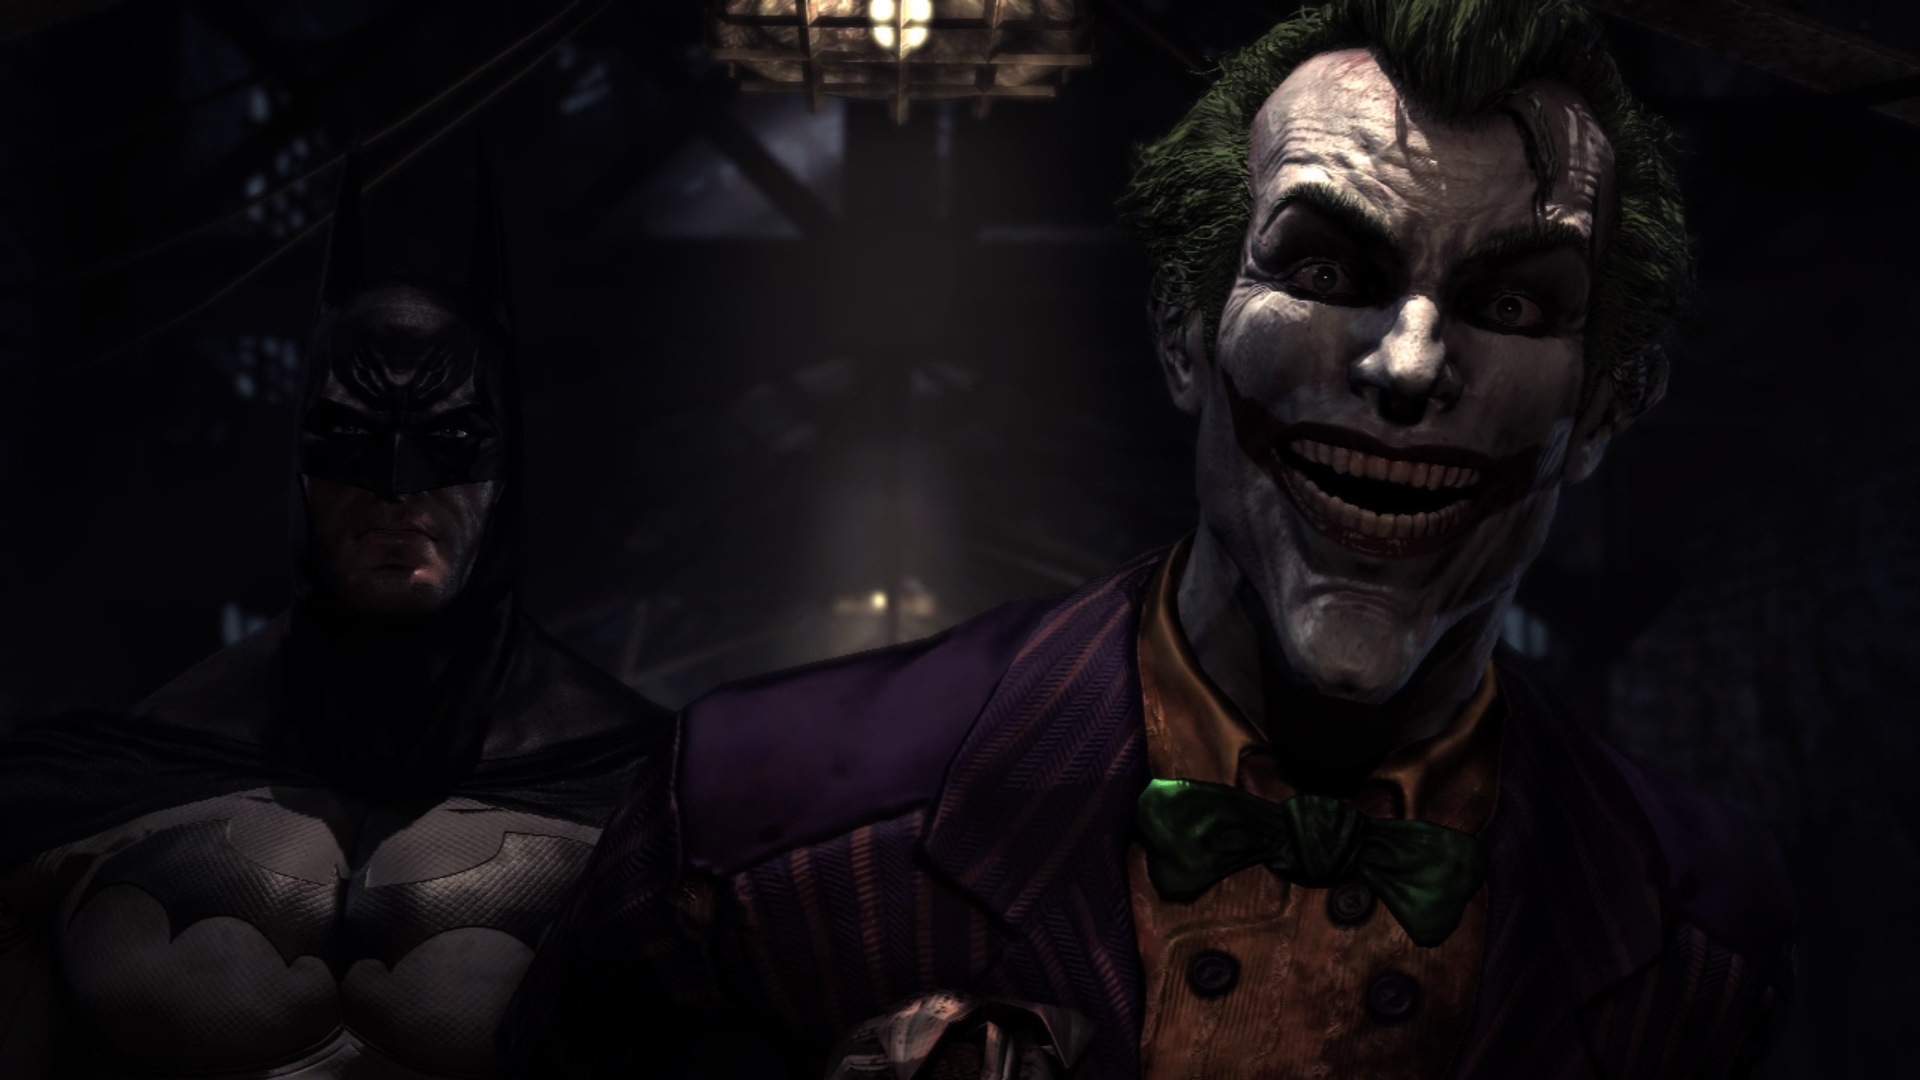 The Joker And Batman Wallpapers HD Wallpaper Movies Wallpapers 1920x1080